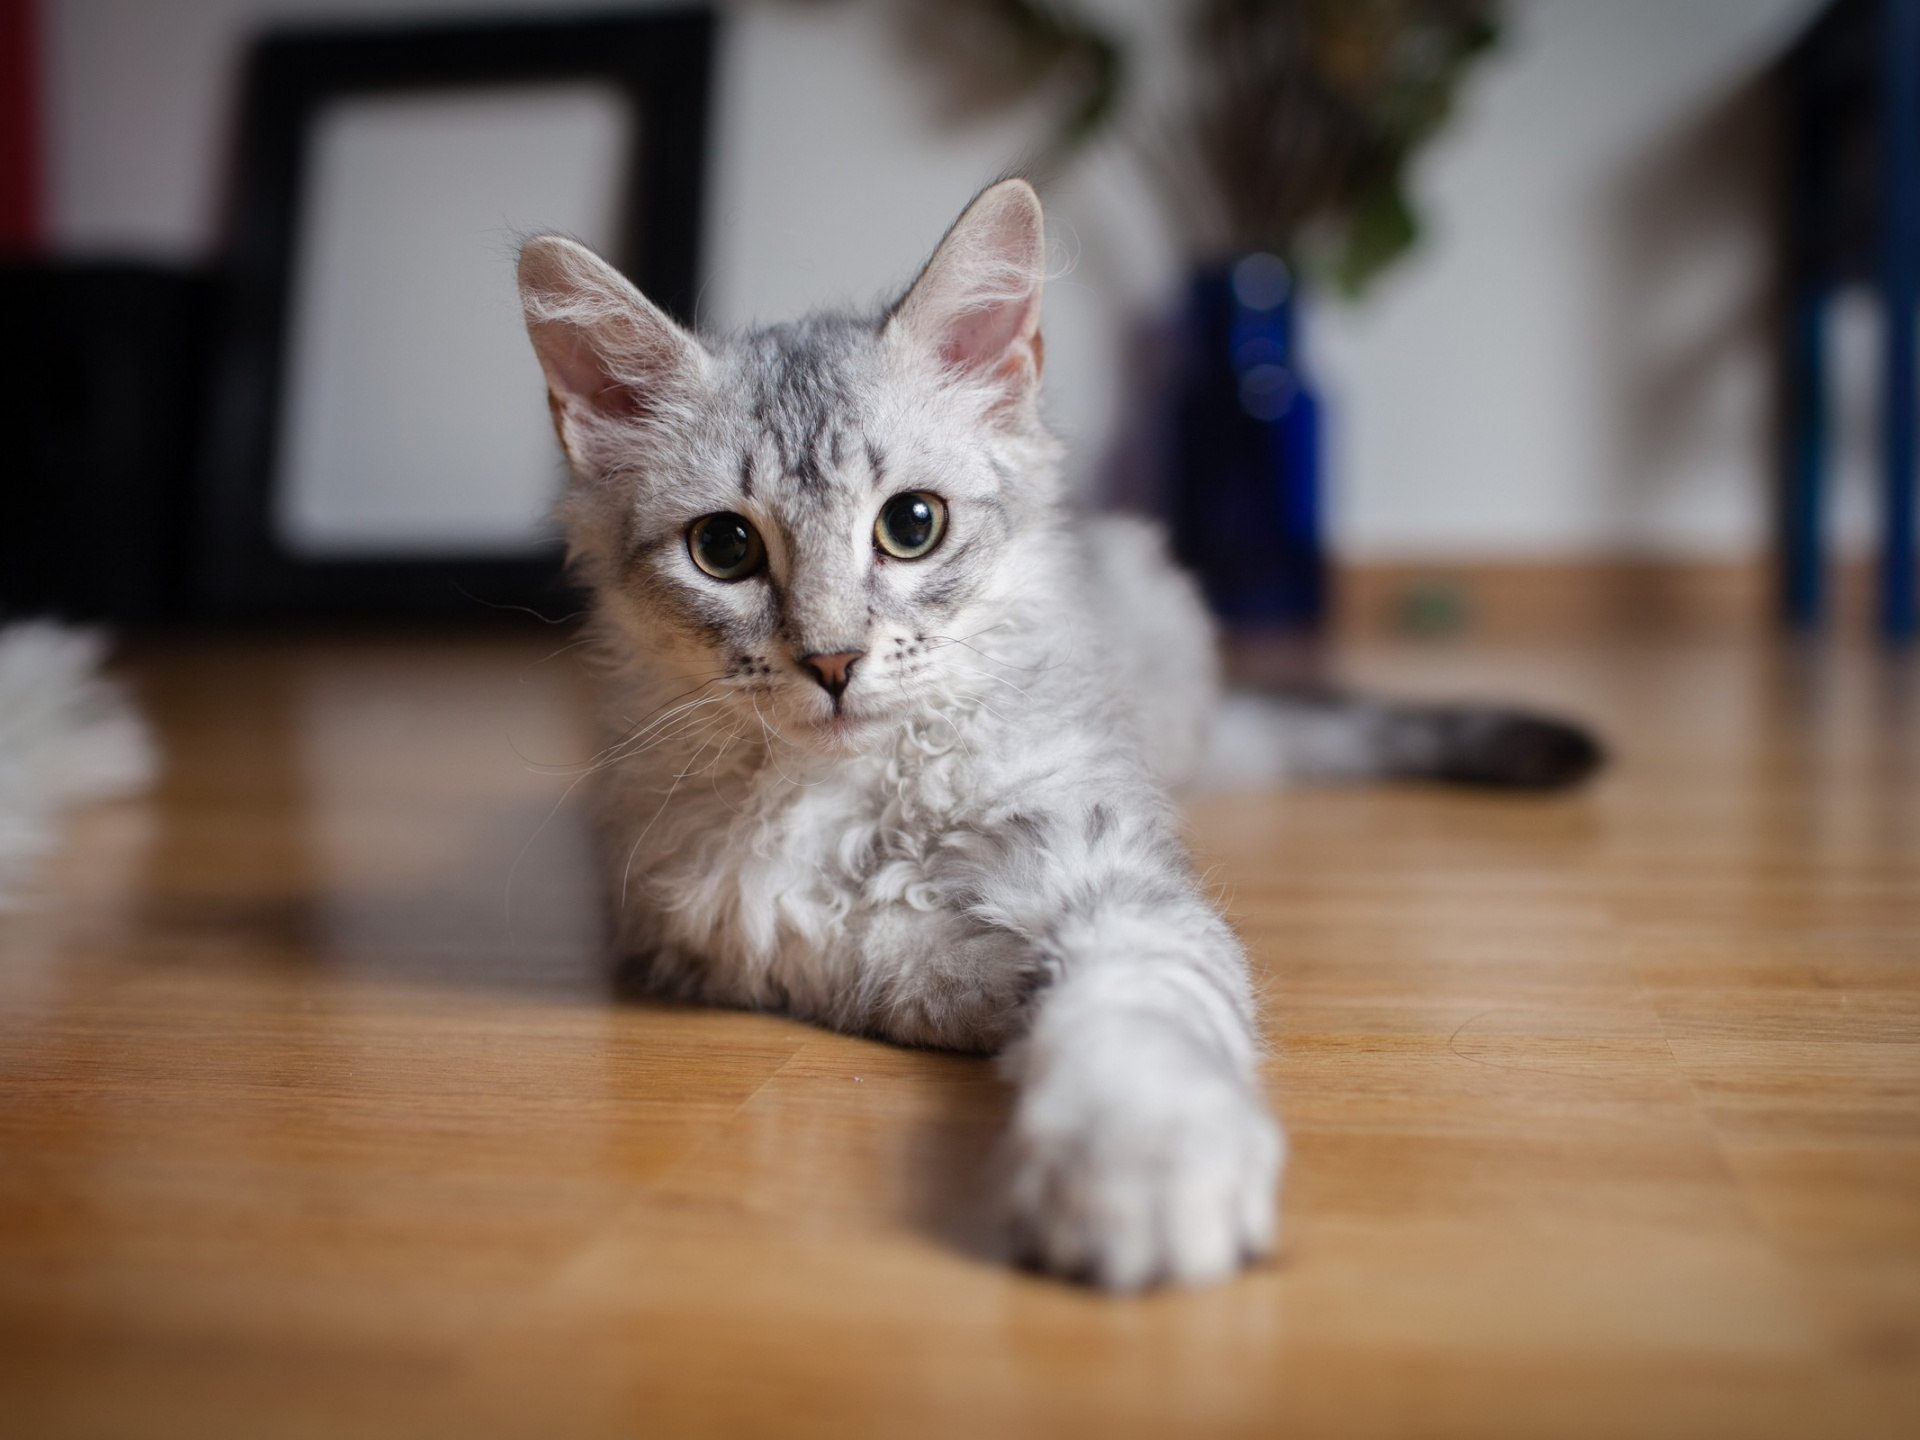 click to free download the wallpaper--Cute Animals Image, Gray Kitten Indoor, Attentive Look, Shall be Impressive 1920X1440 free wallpaper download